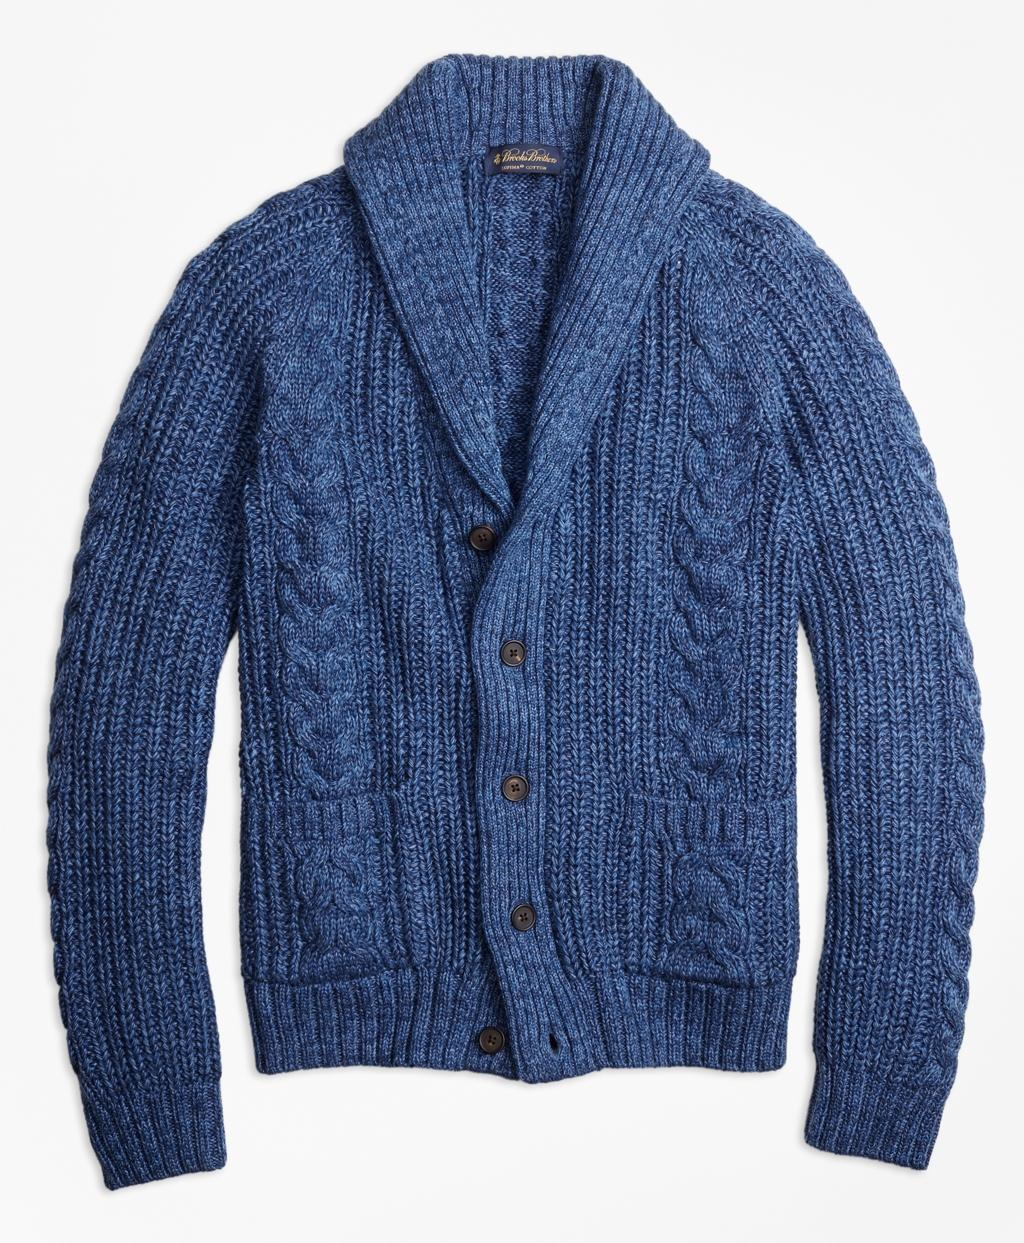 With a cable knit inspired by classic fisherman sweaters, this cardigan is made from cotton, which will keep you warm without overheating. It's perfect for transitional weather, .